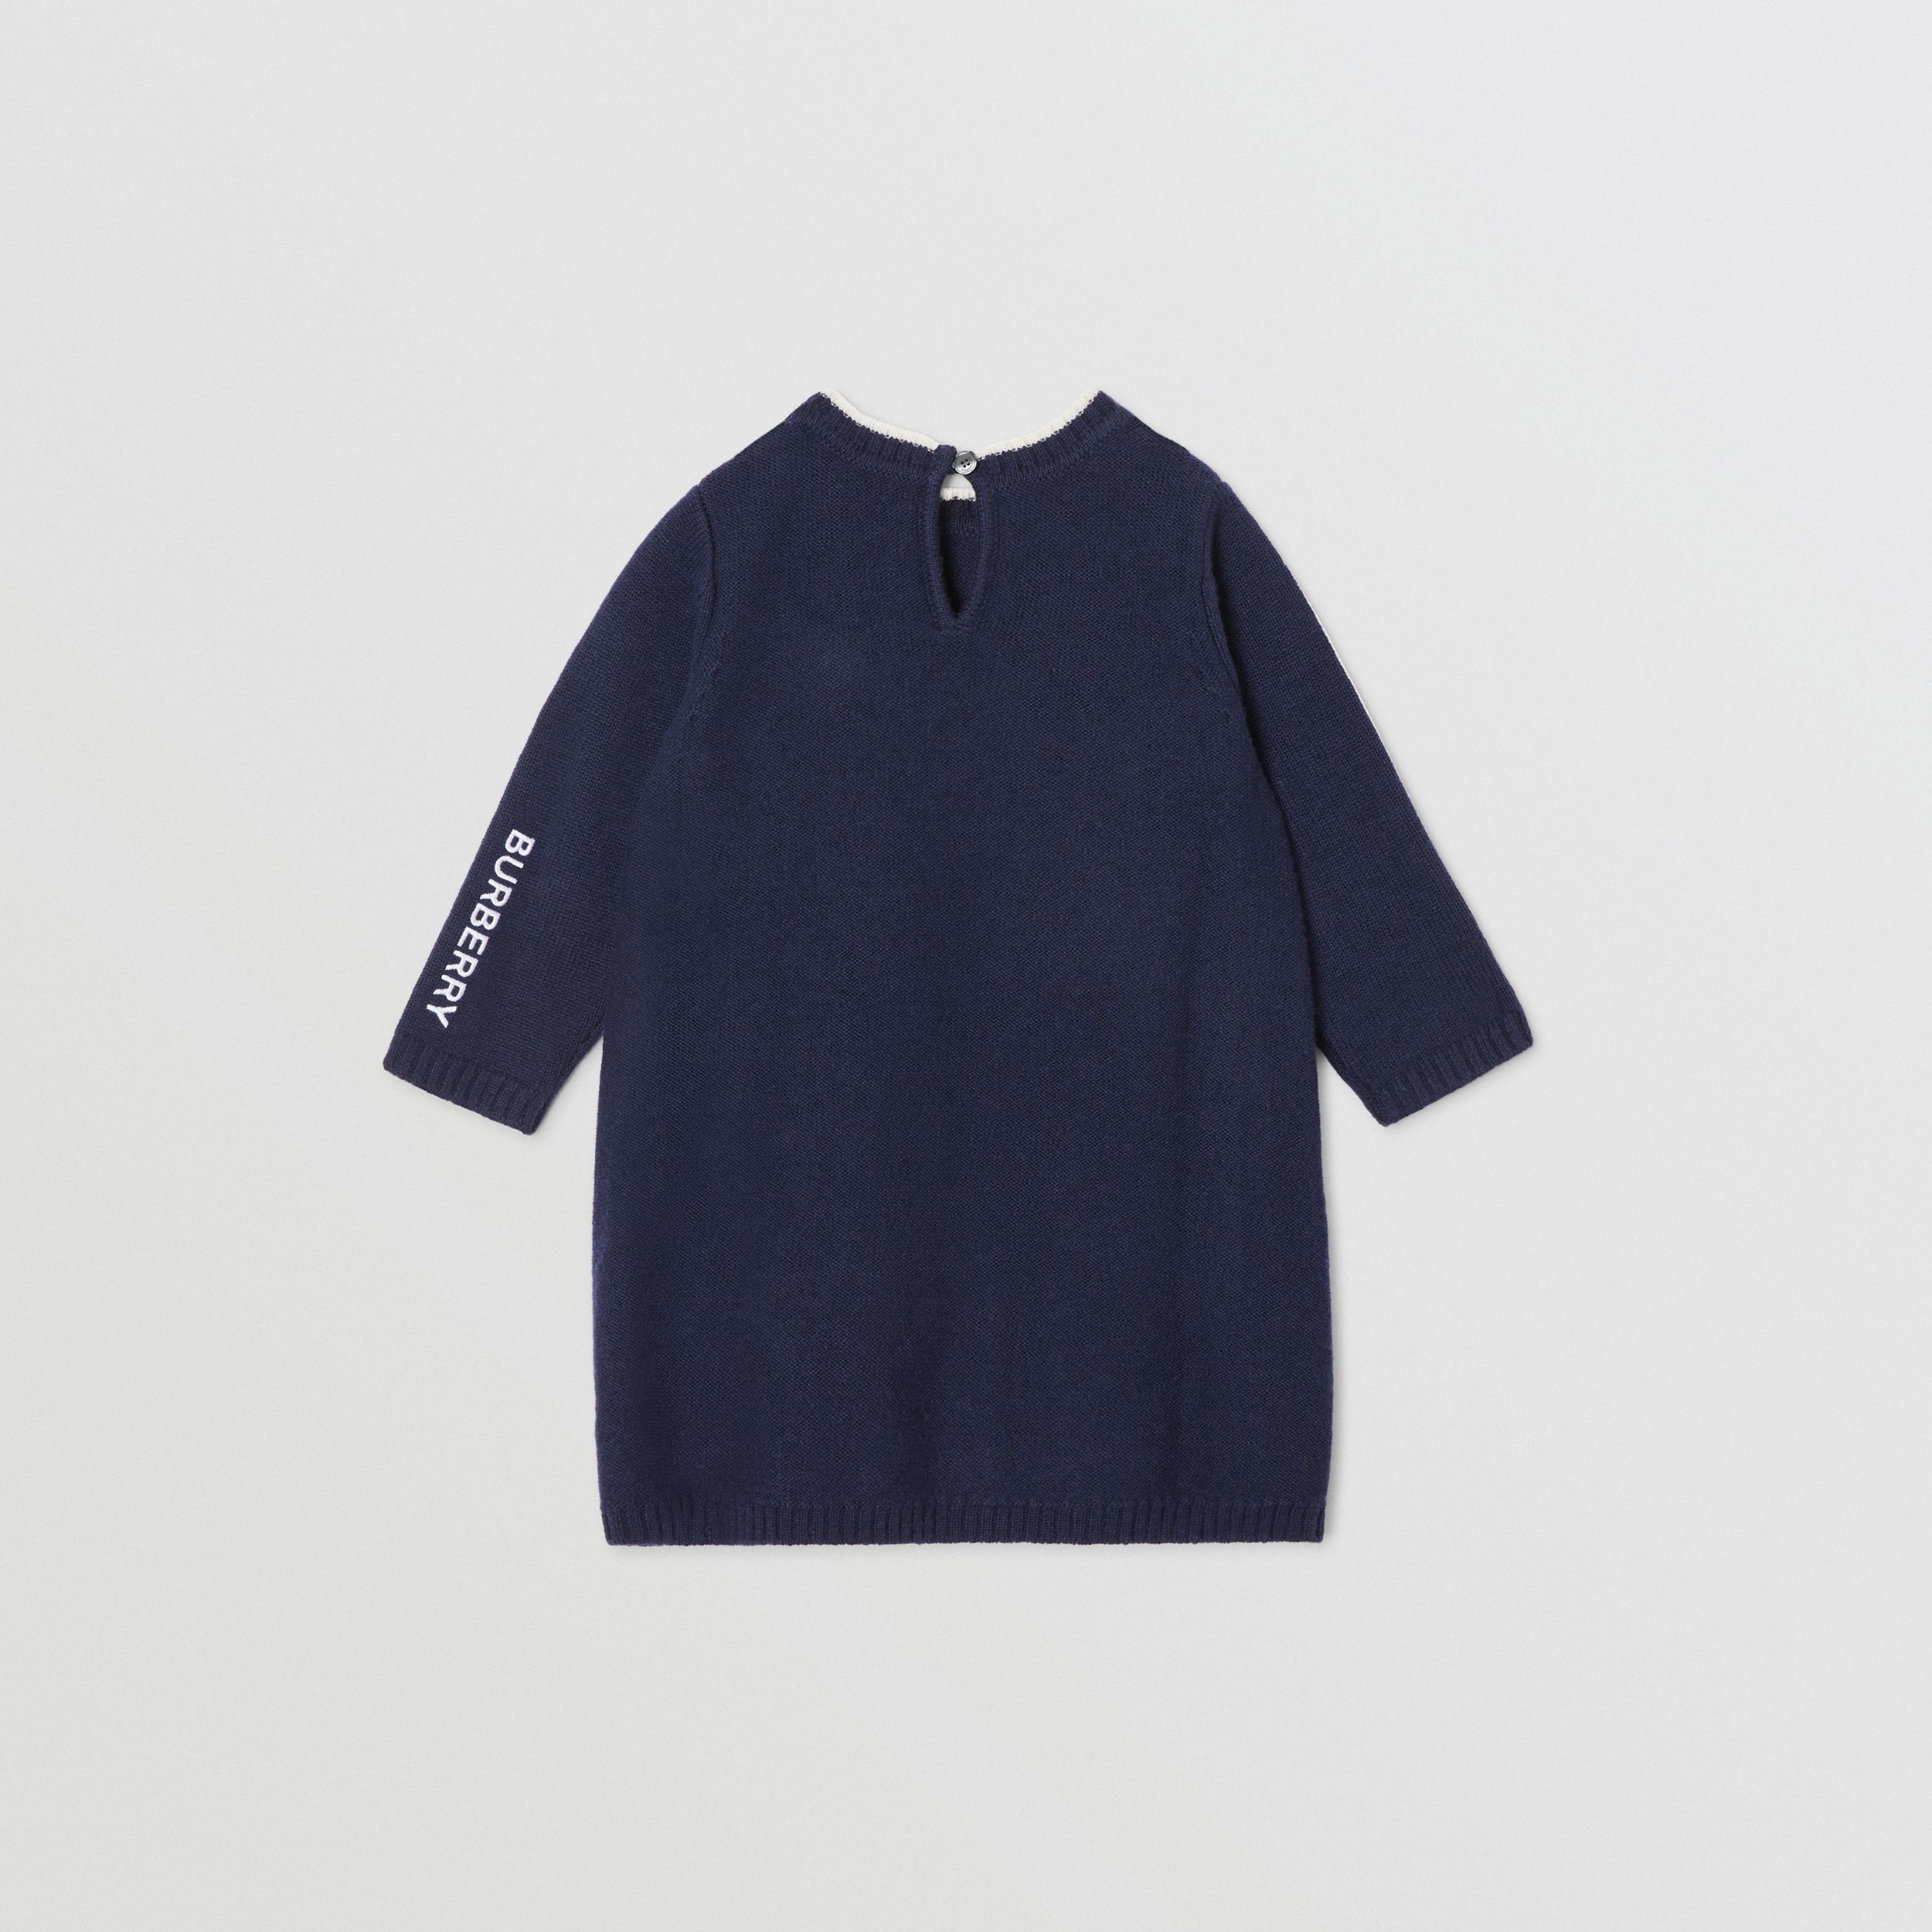 Thomas Bear Detail Wool Cashmere Sweater Dress in Navy - Children | Burberry - 4